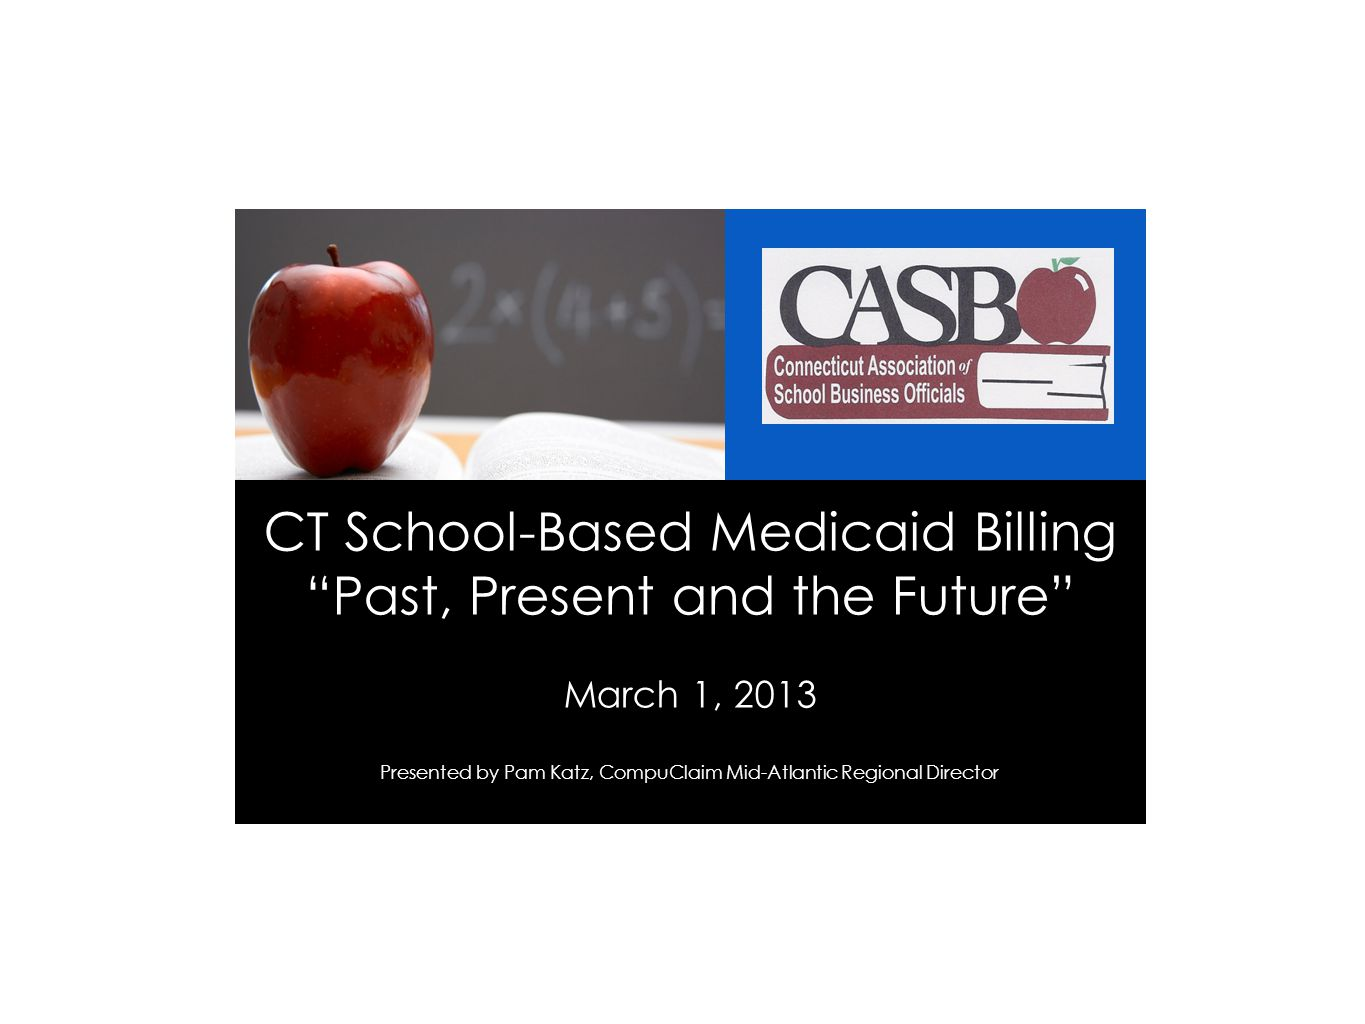 "CT School-Based Medicaid Billing ""Past, Present and the Future"" March 1, 2013 Presented by Pam Katz, CompuClaim Mid-Atlantic Regional Director"